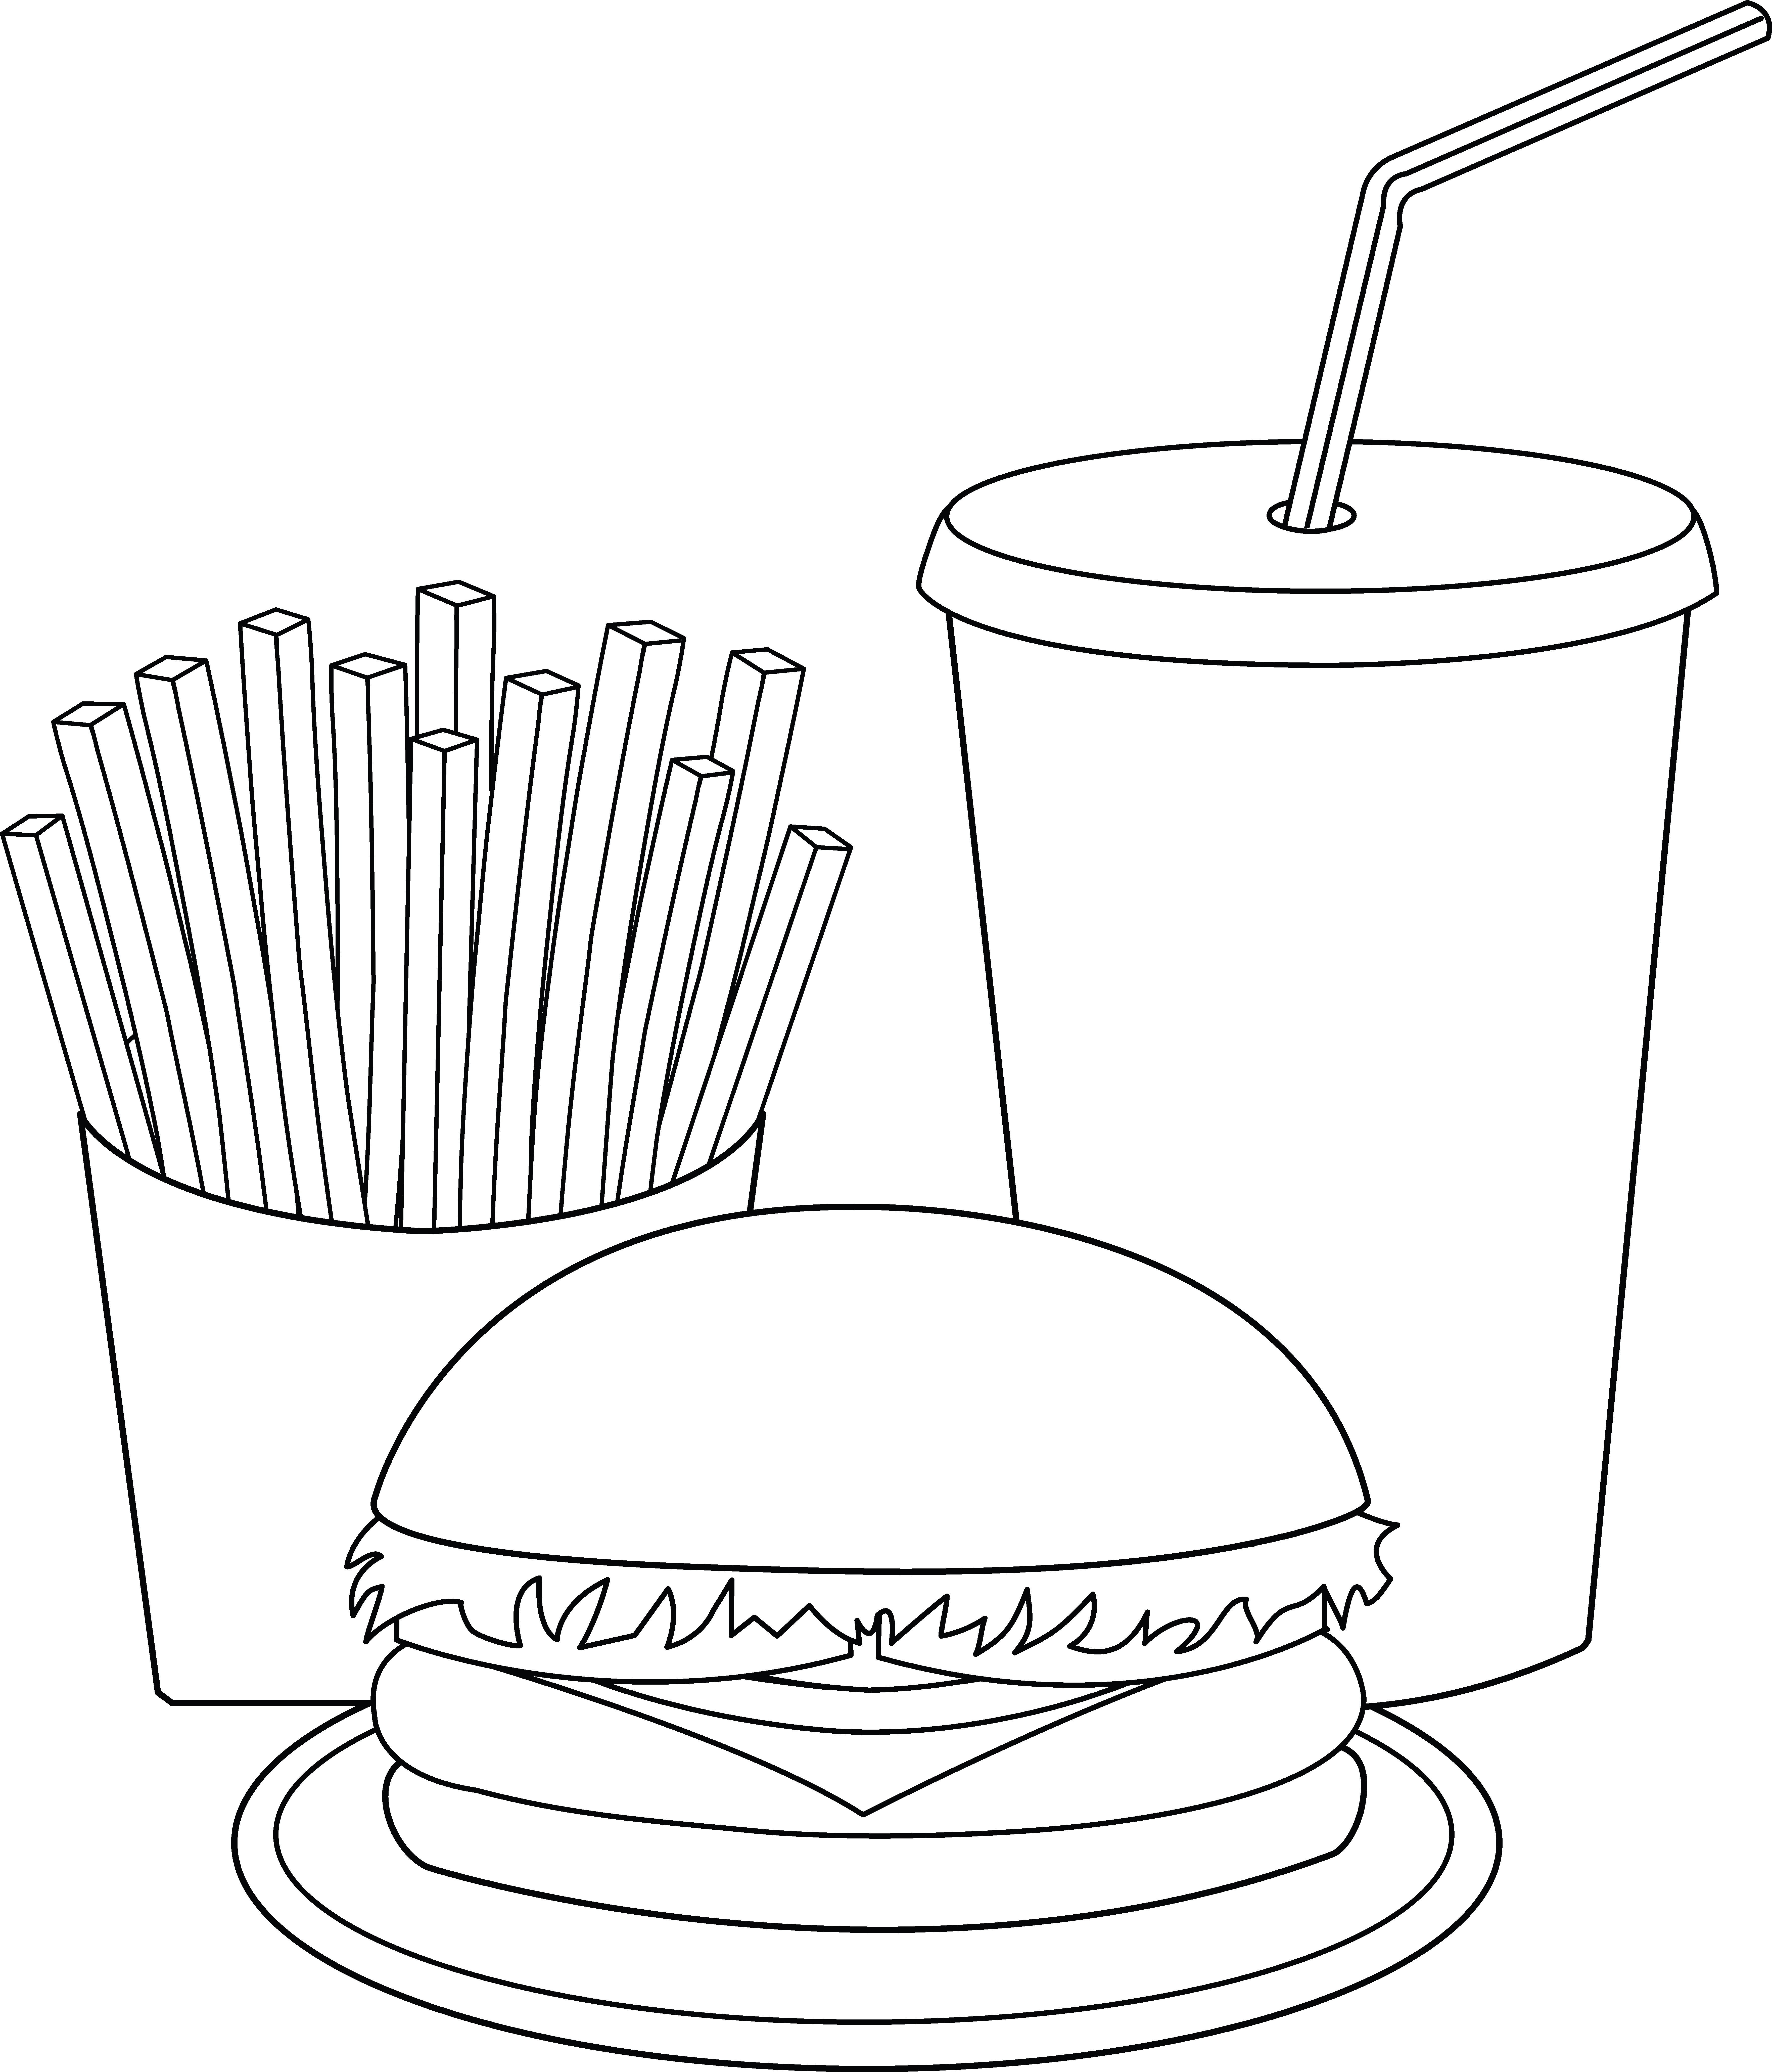 Meal With French Fries Coloring Page